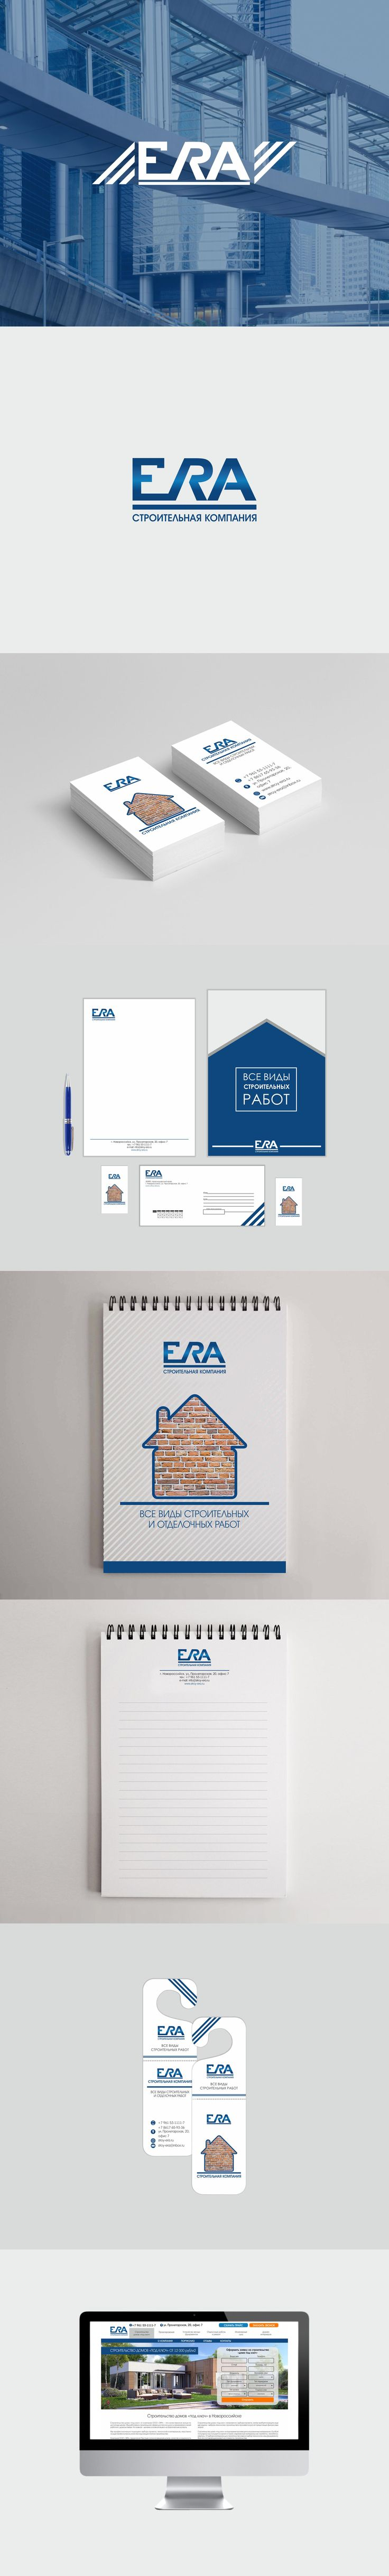 ERA. Identity Branding. Business Card. Letterhead. Notebook.Door hanger. Web design.